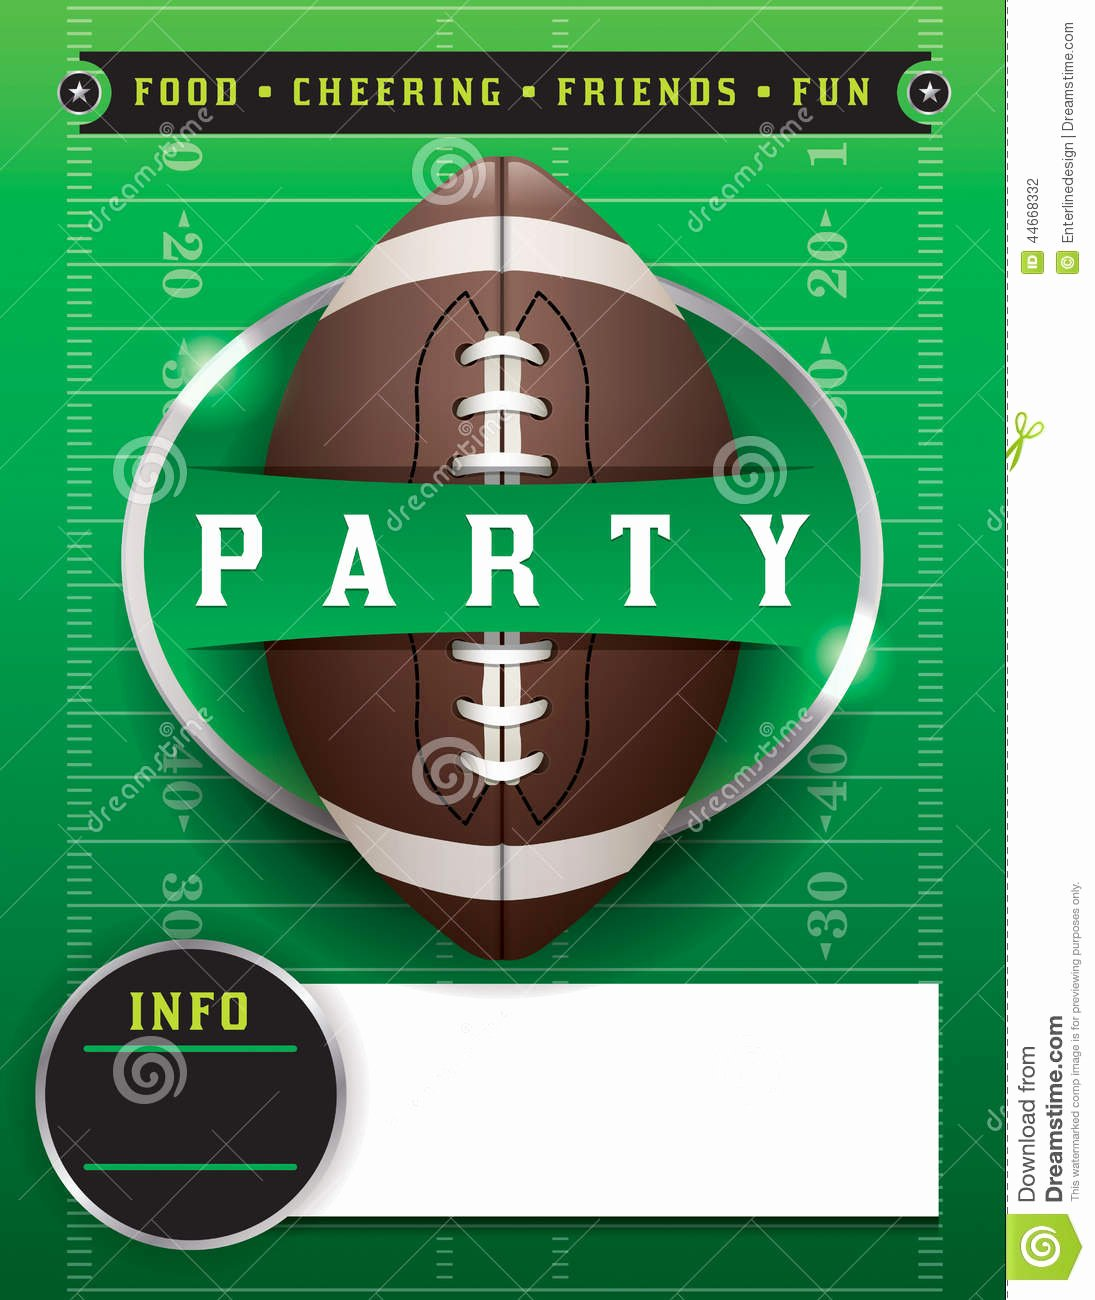 Football Party Invitation Template New American Football Party Template Illustration Stock Vector